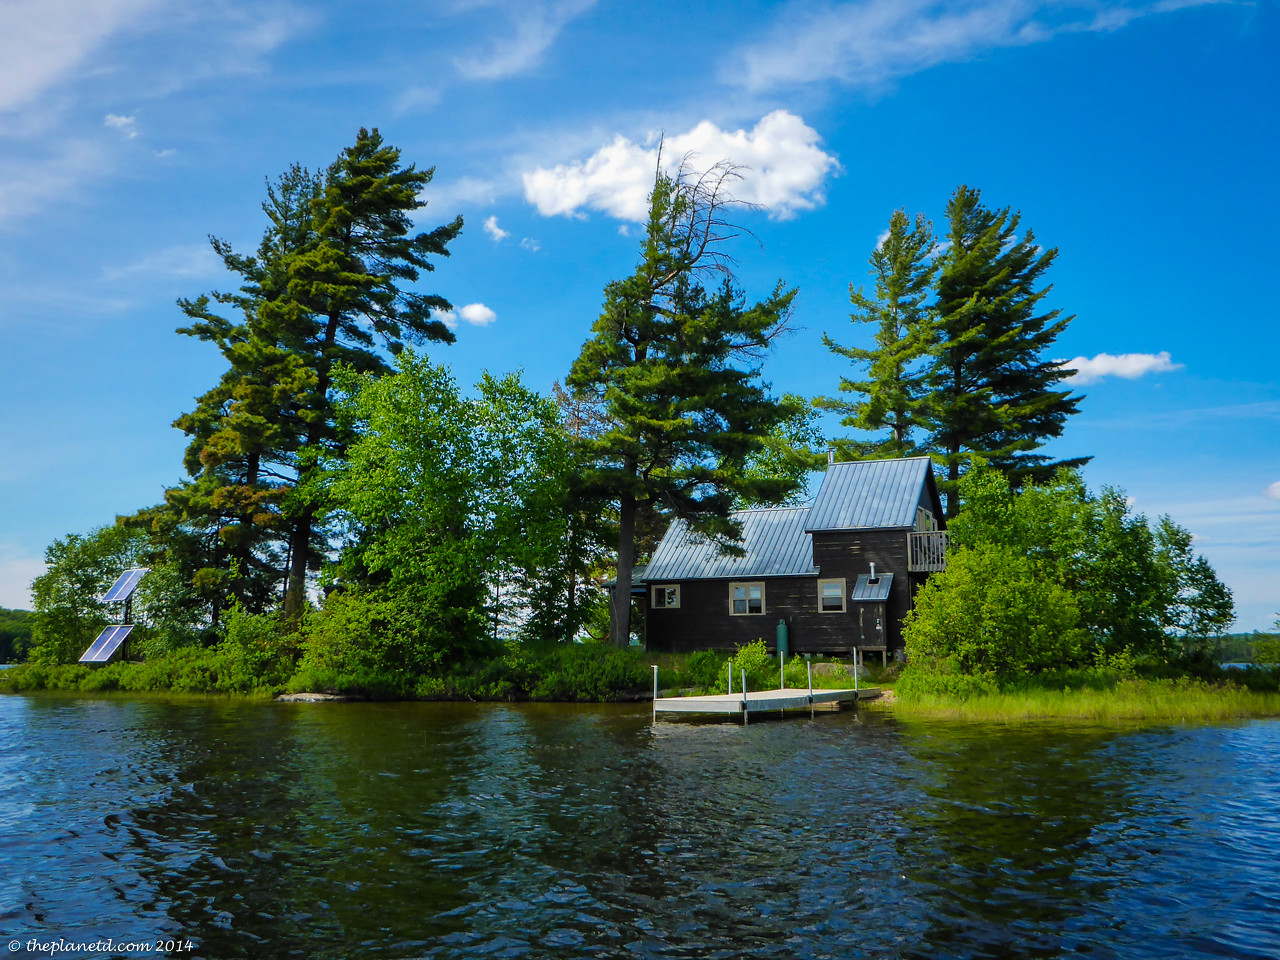 Kicking back on your own island retreat in Ontario